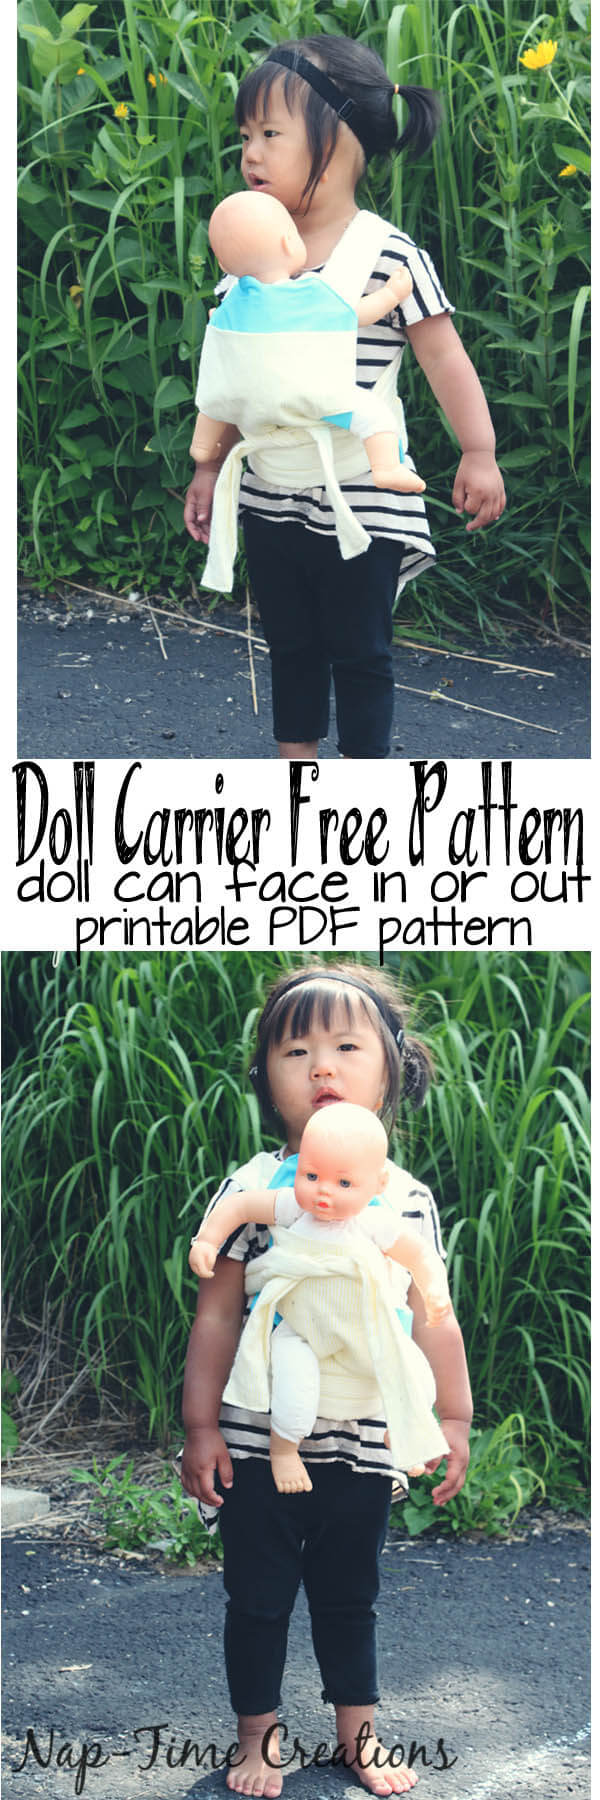 doll carrier free pdf pattern and tutorial from Nap-Time Creations 1